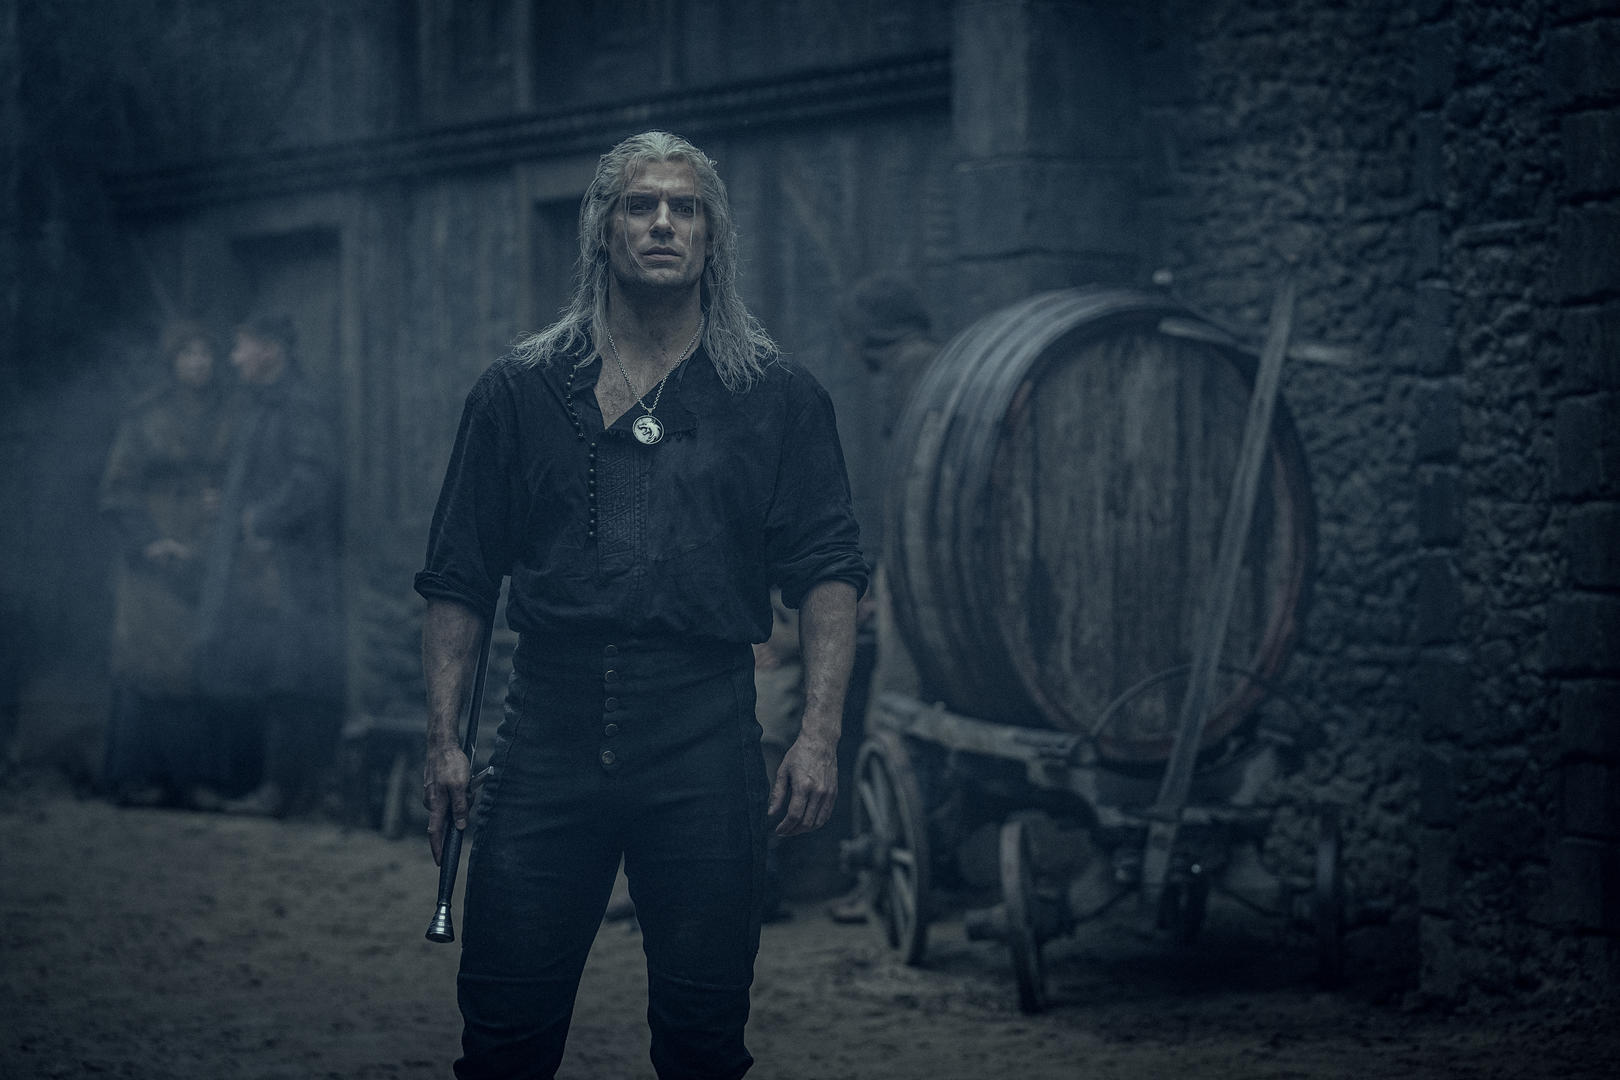 Netflix confirma que la serie de The Witcher tendrá una segunda temporada